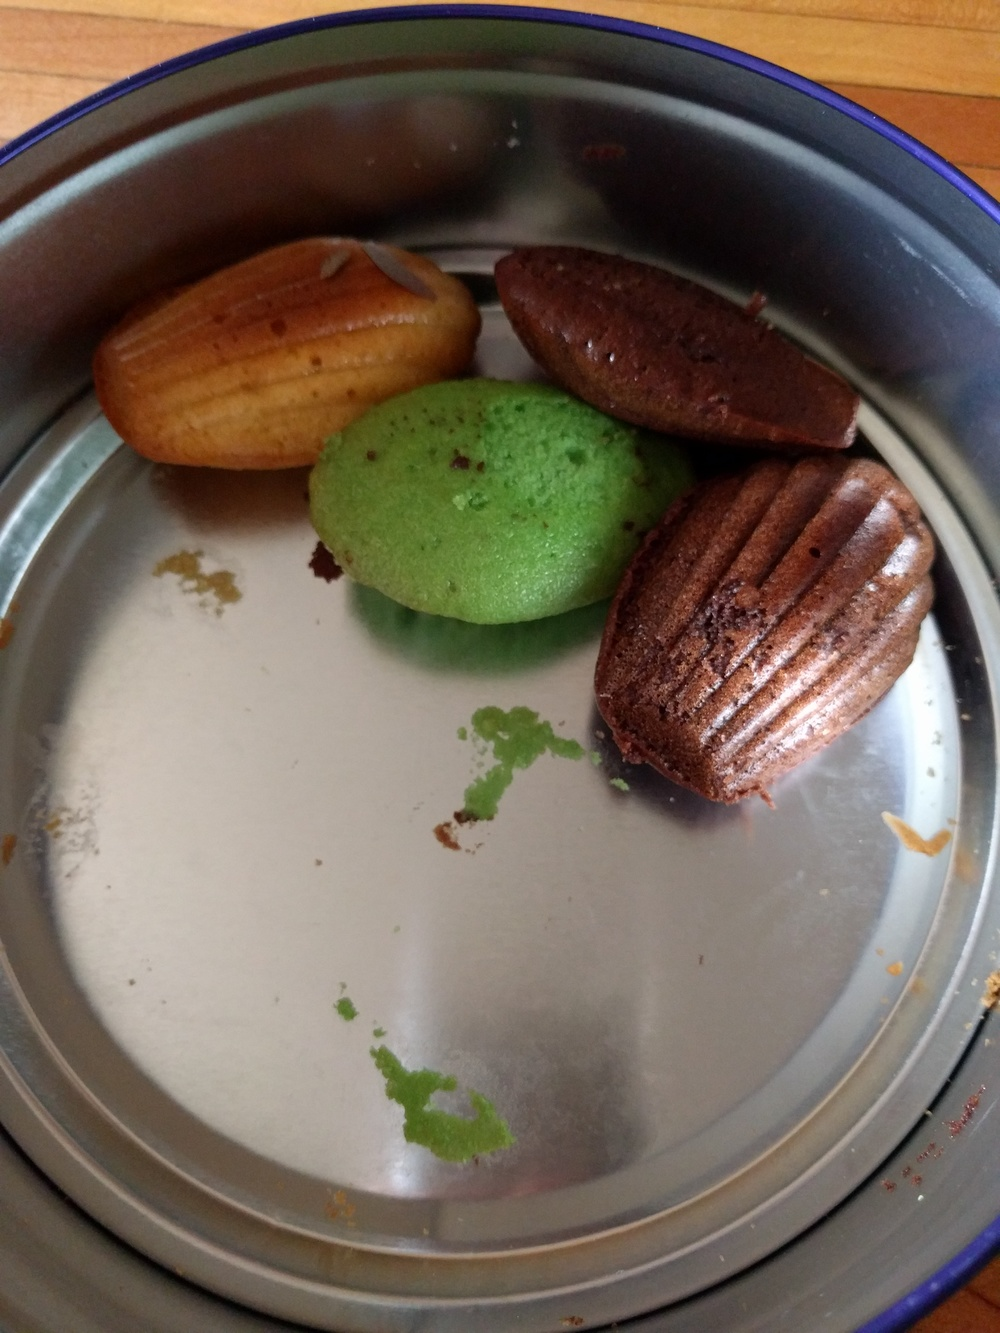 What's leftover of orange-, pandan- and chocolate-flavored madeleines. Of course they disappeared after I took the picture. Credit: Grace G Lau